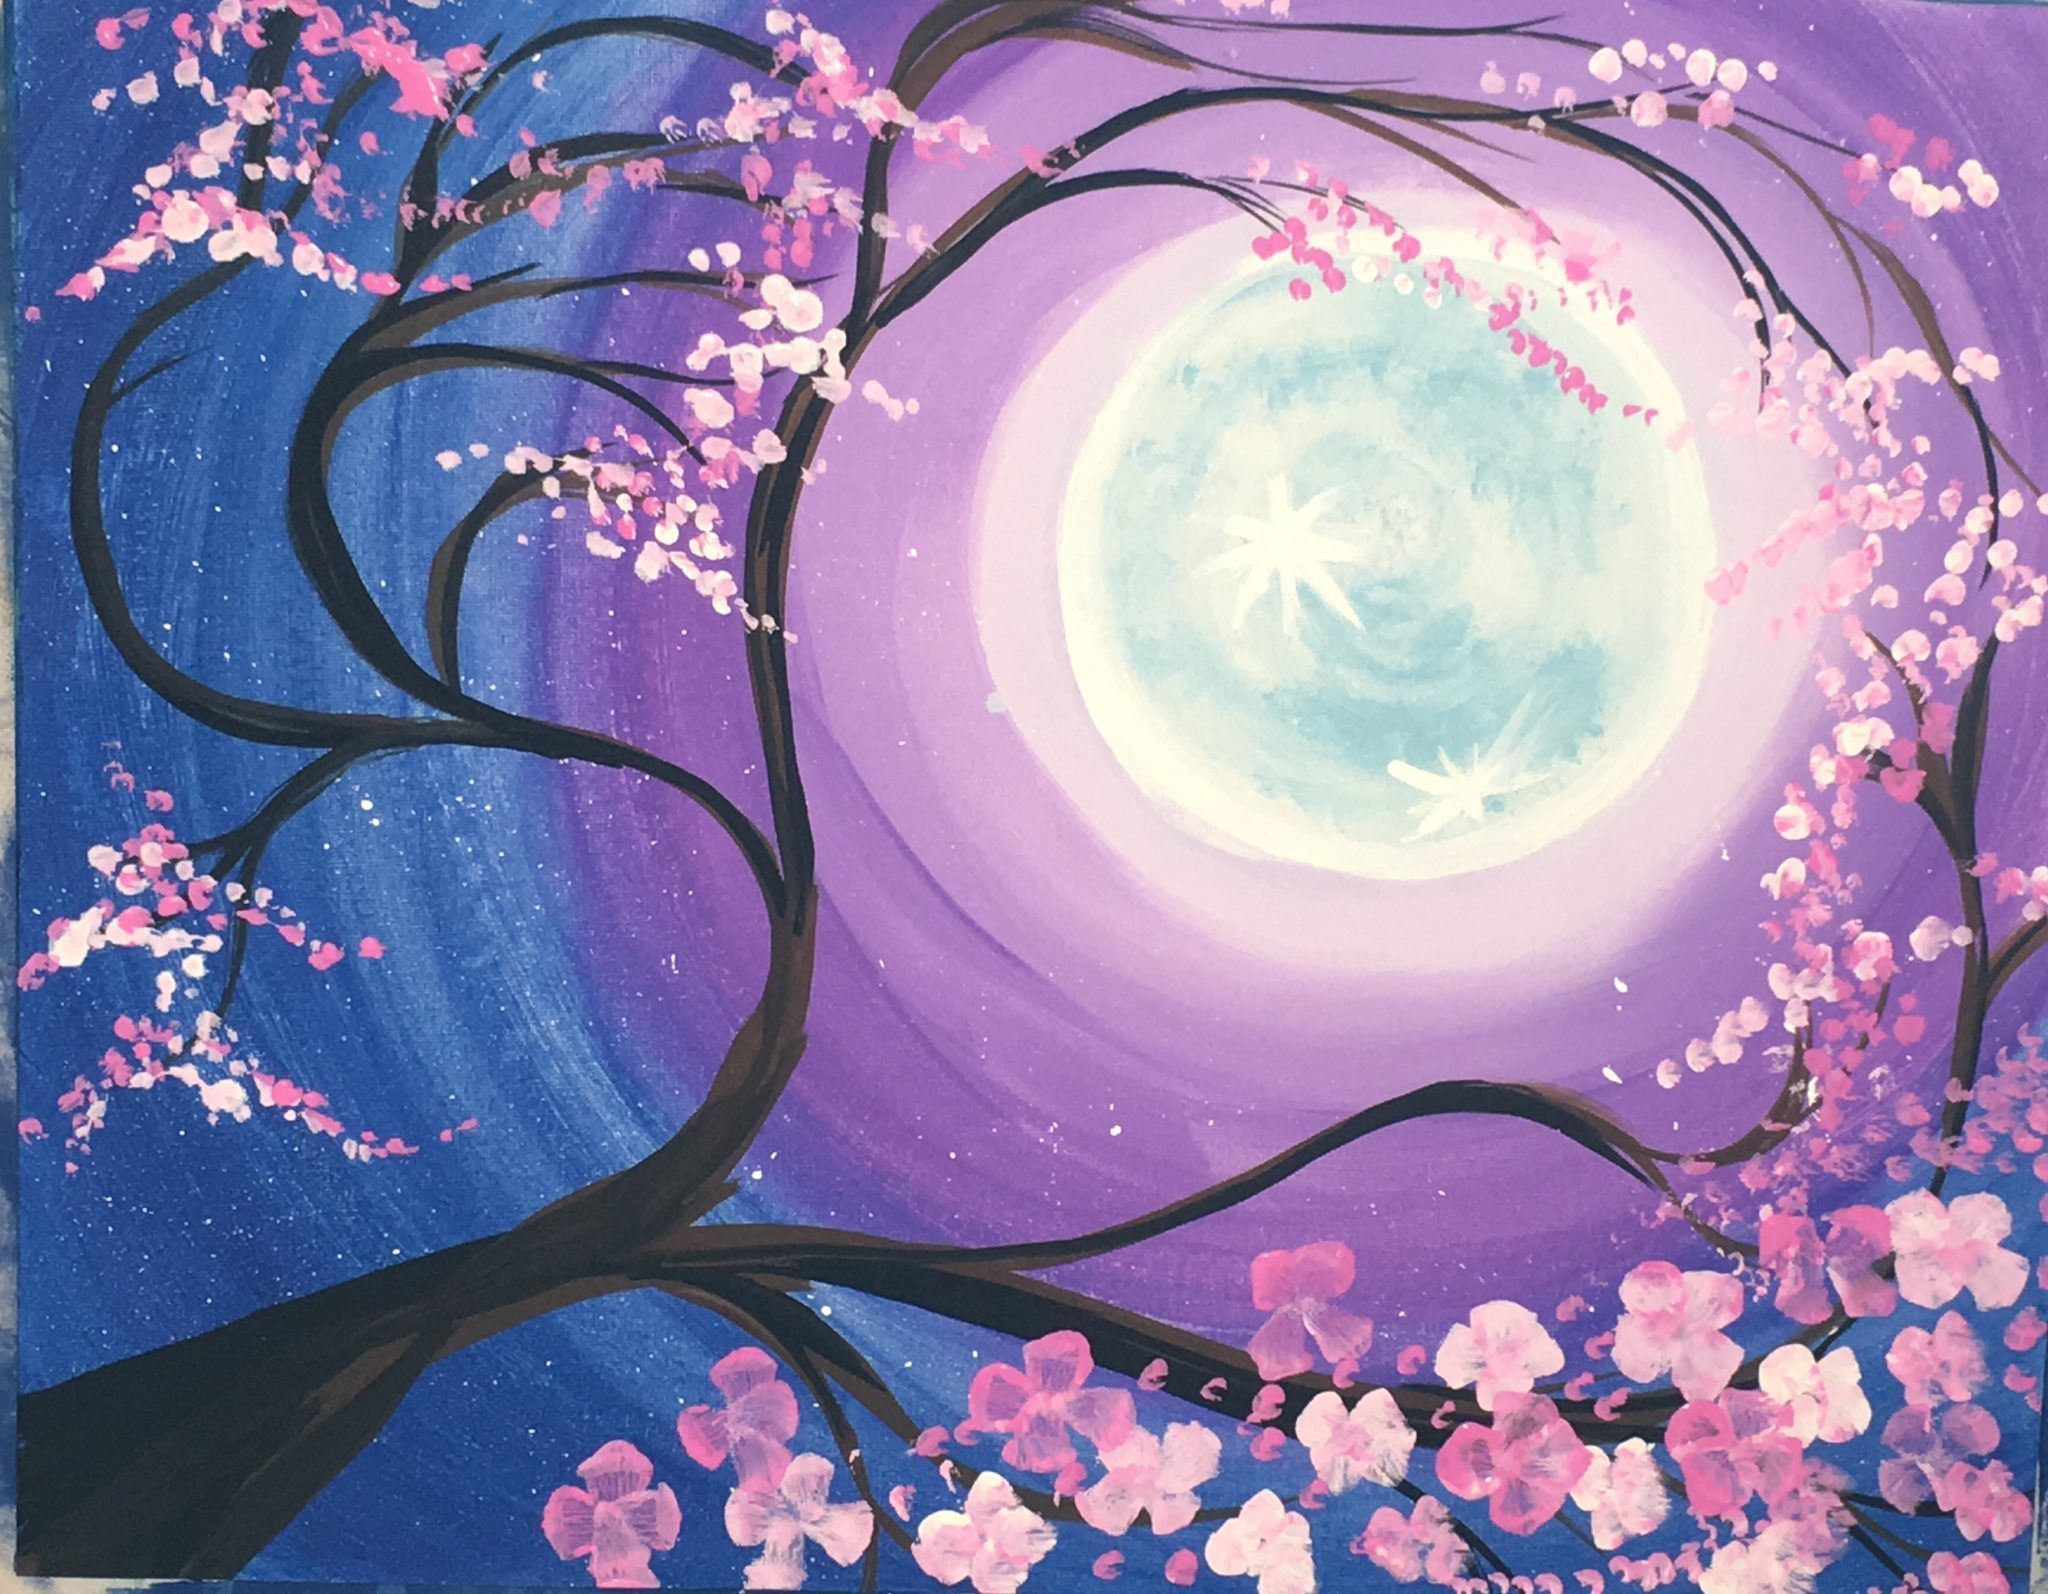 Easy Canvas Painting For Beginners Step By Sakura Means Cherry Blossom In Japanese The